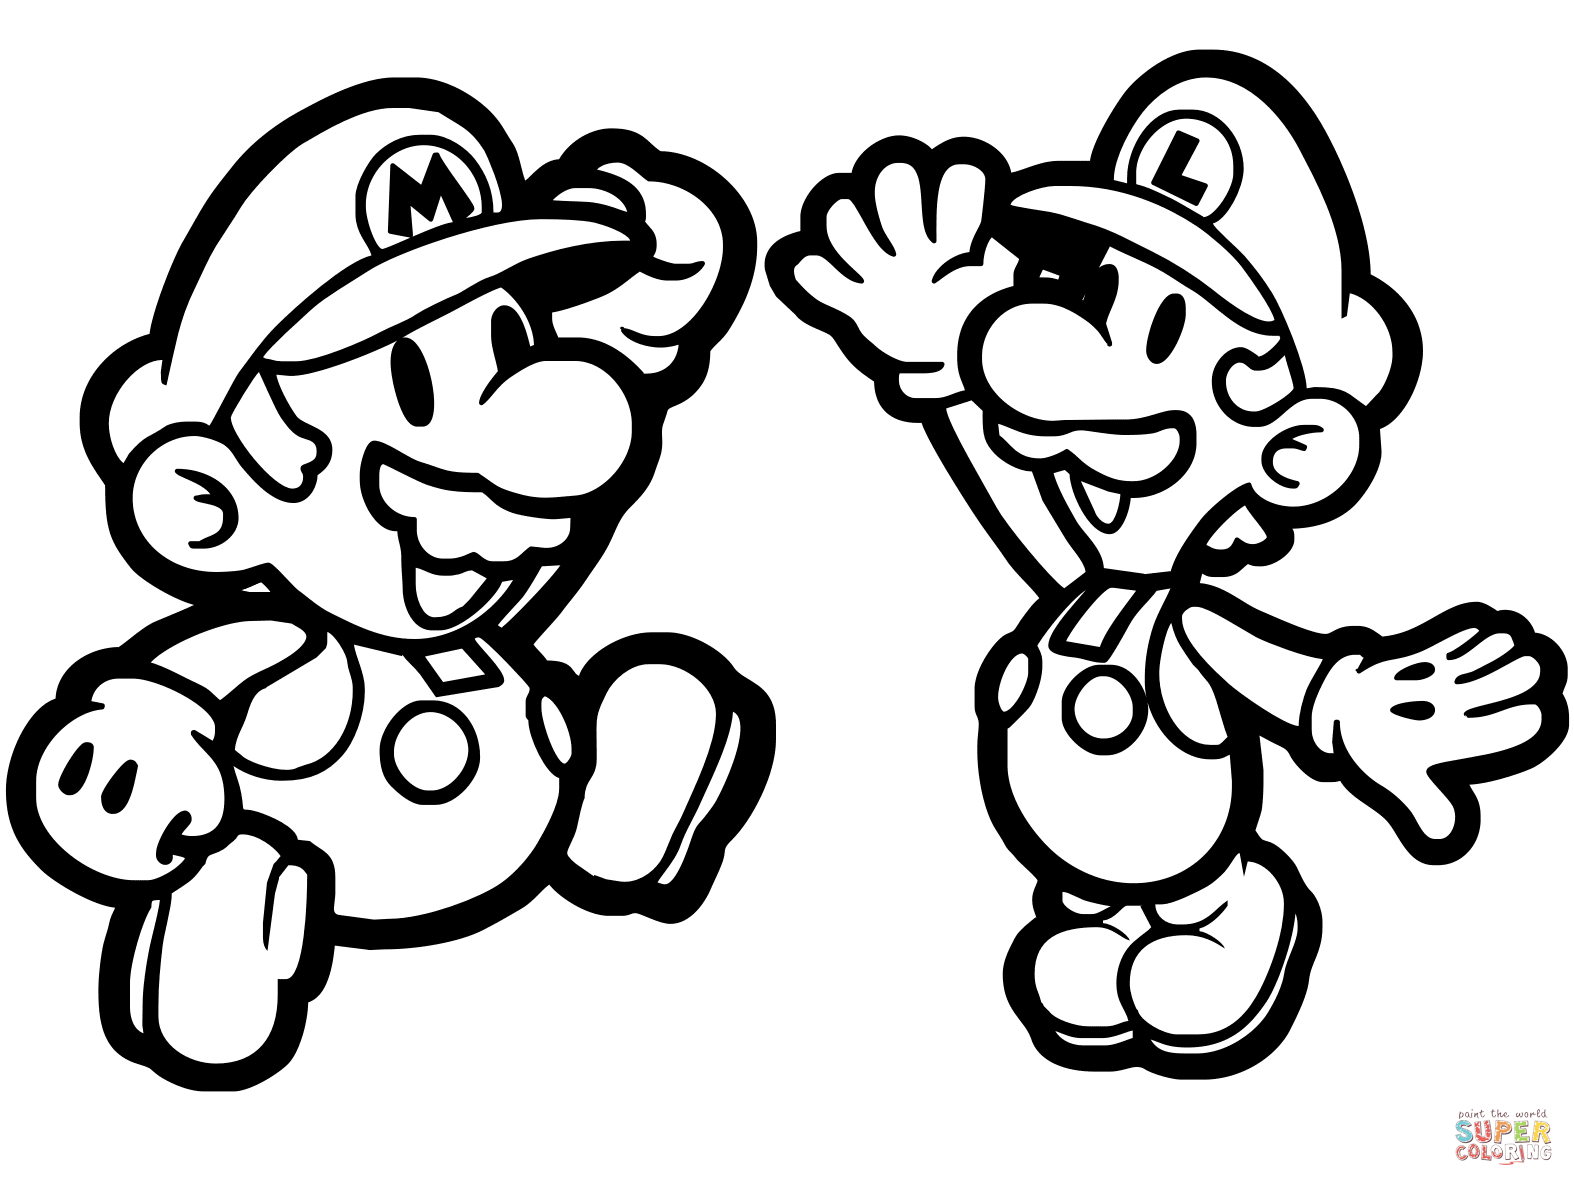 Paper Mario and Luigi coloring page | Free Printable Coloring Pages